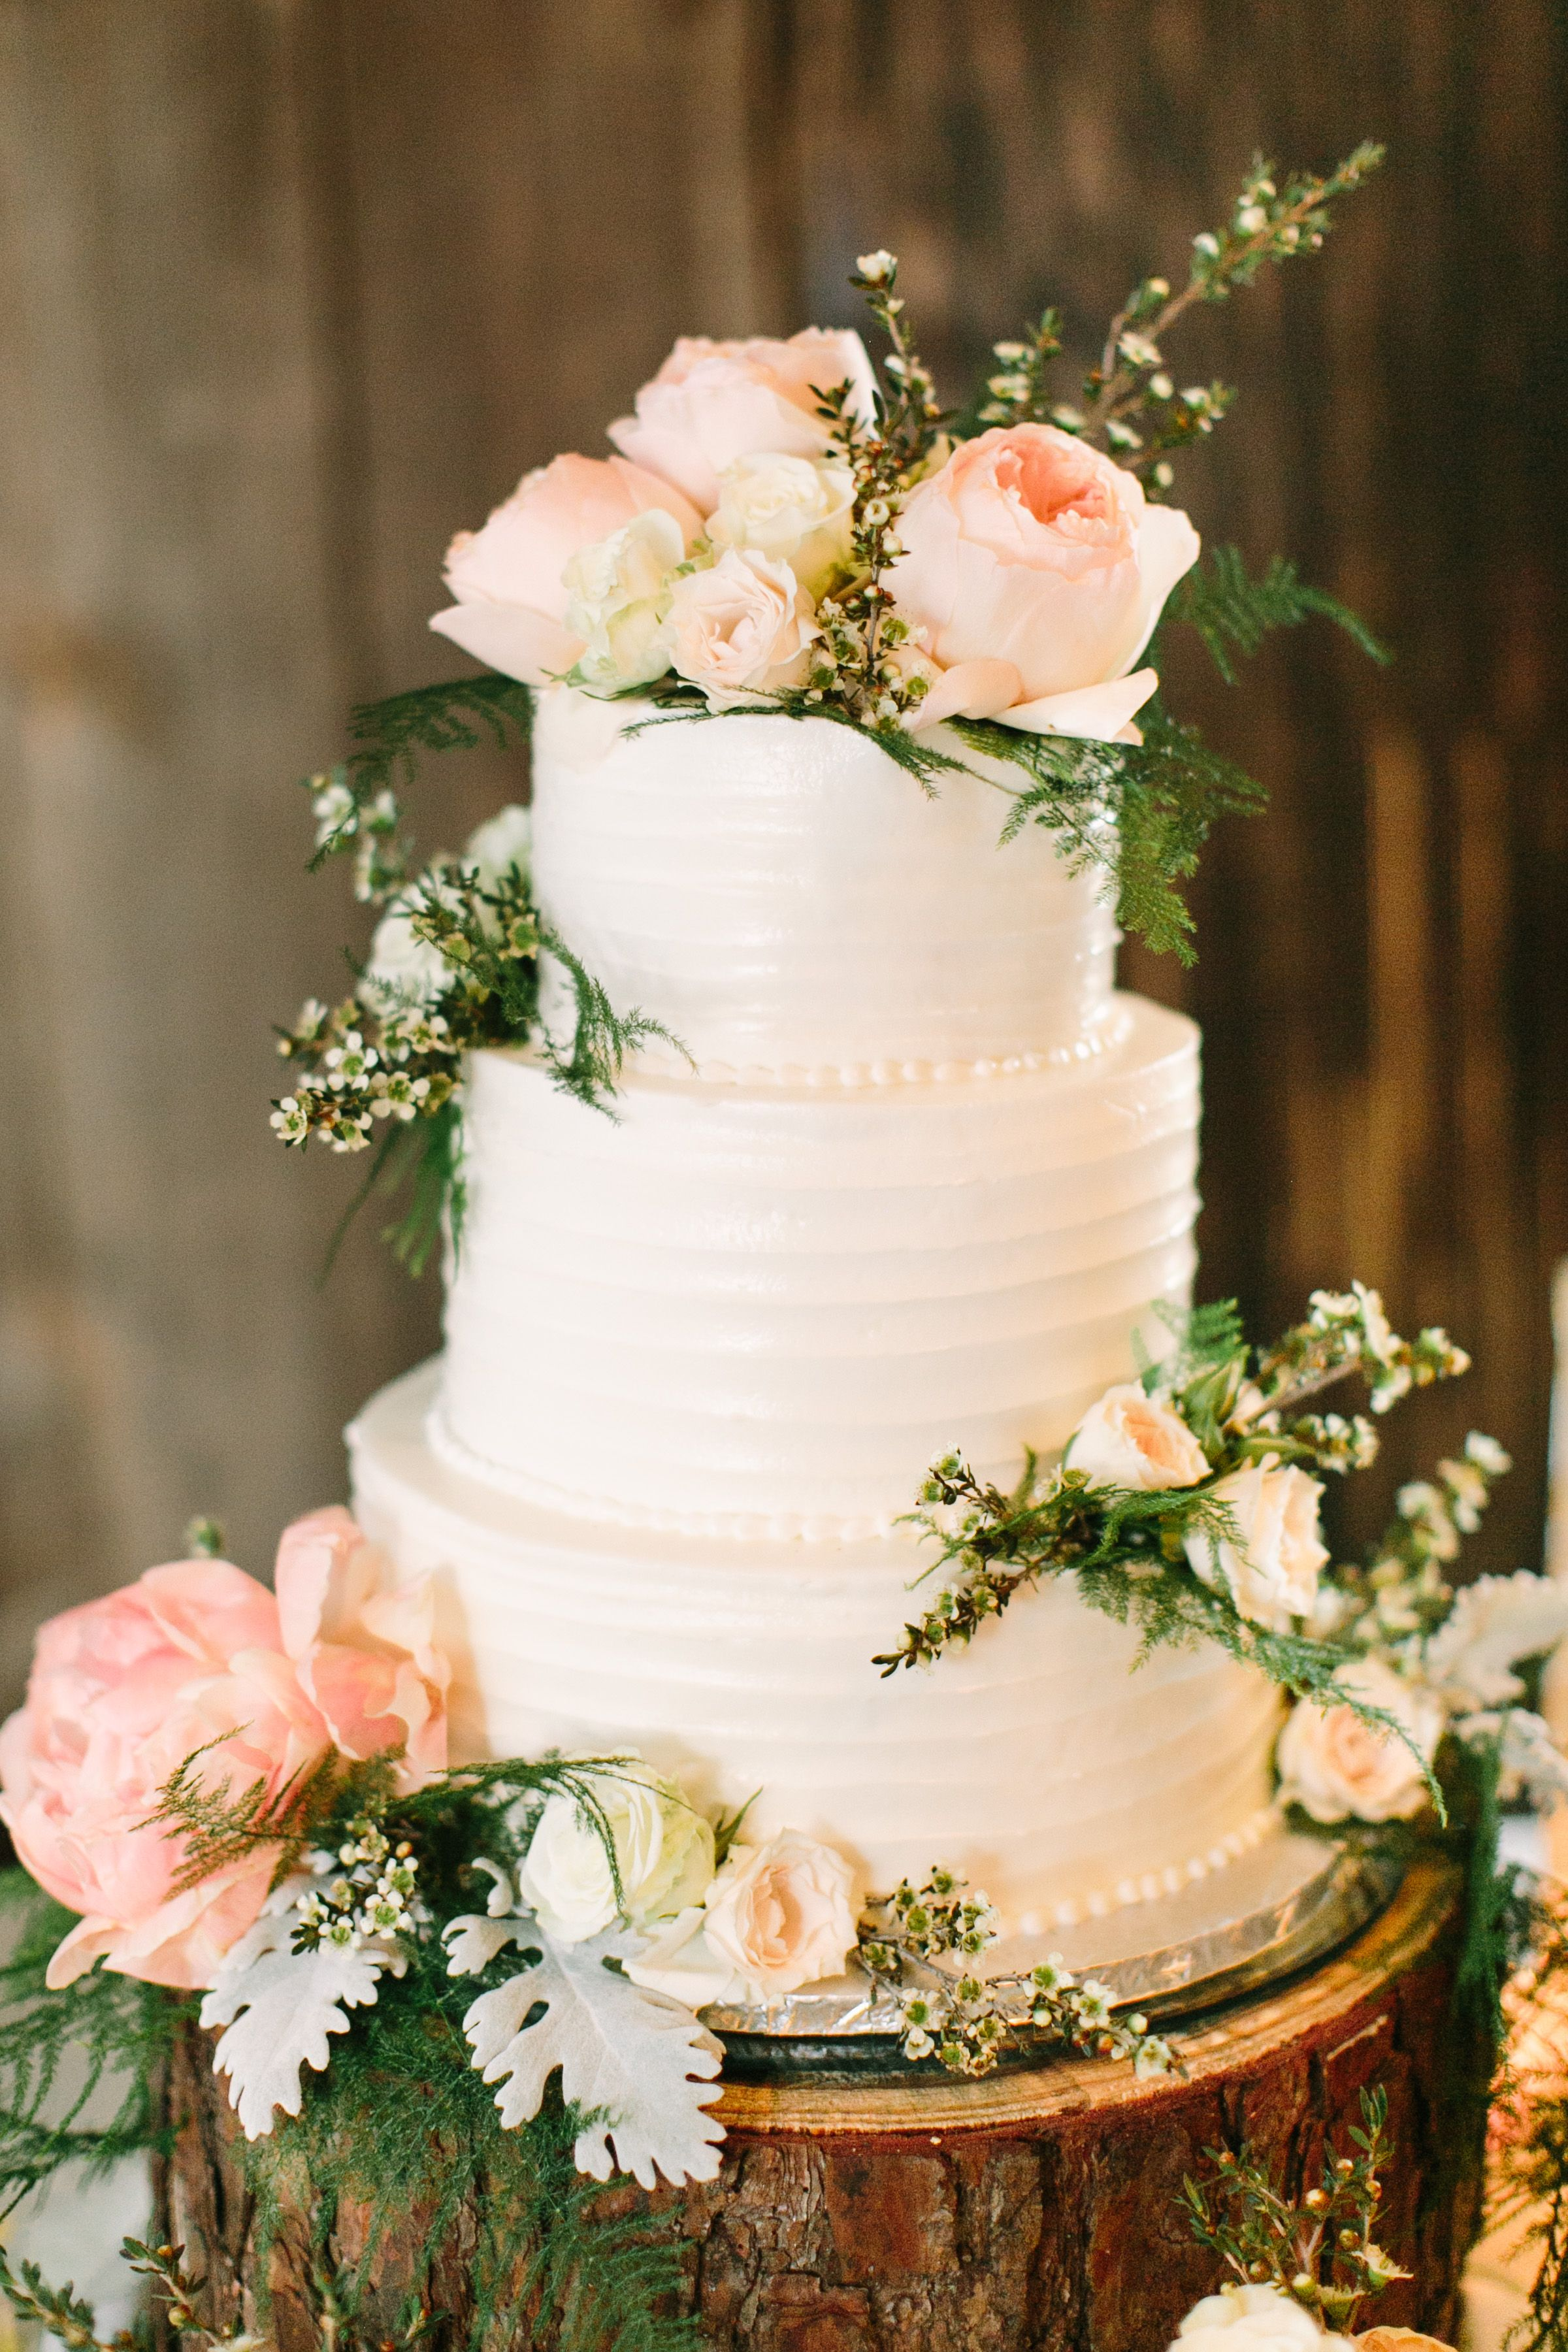 Real or fake flowers on cake Wedding cakes with flowers